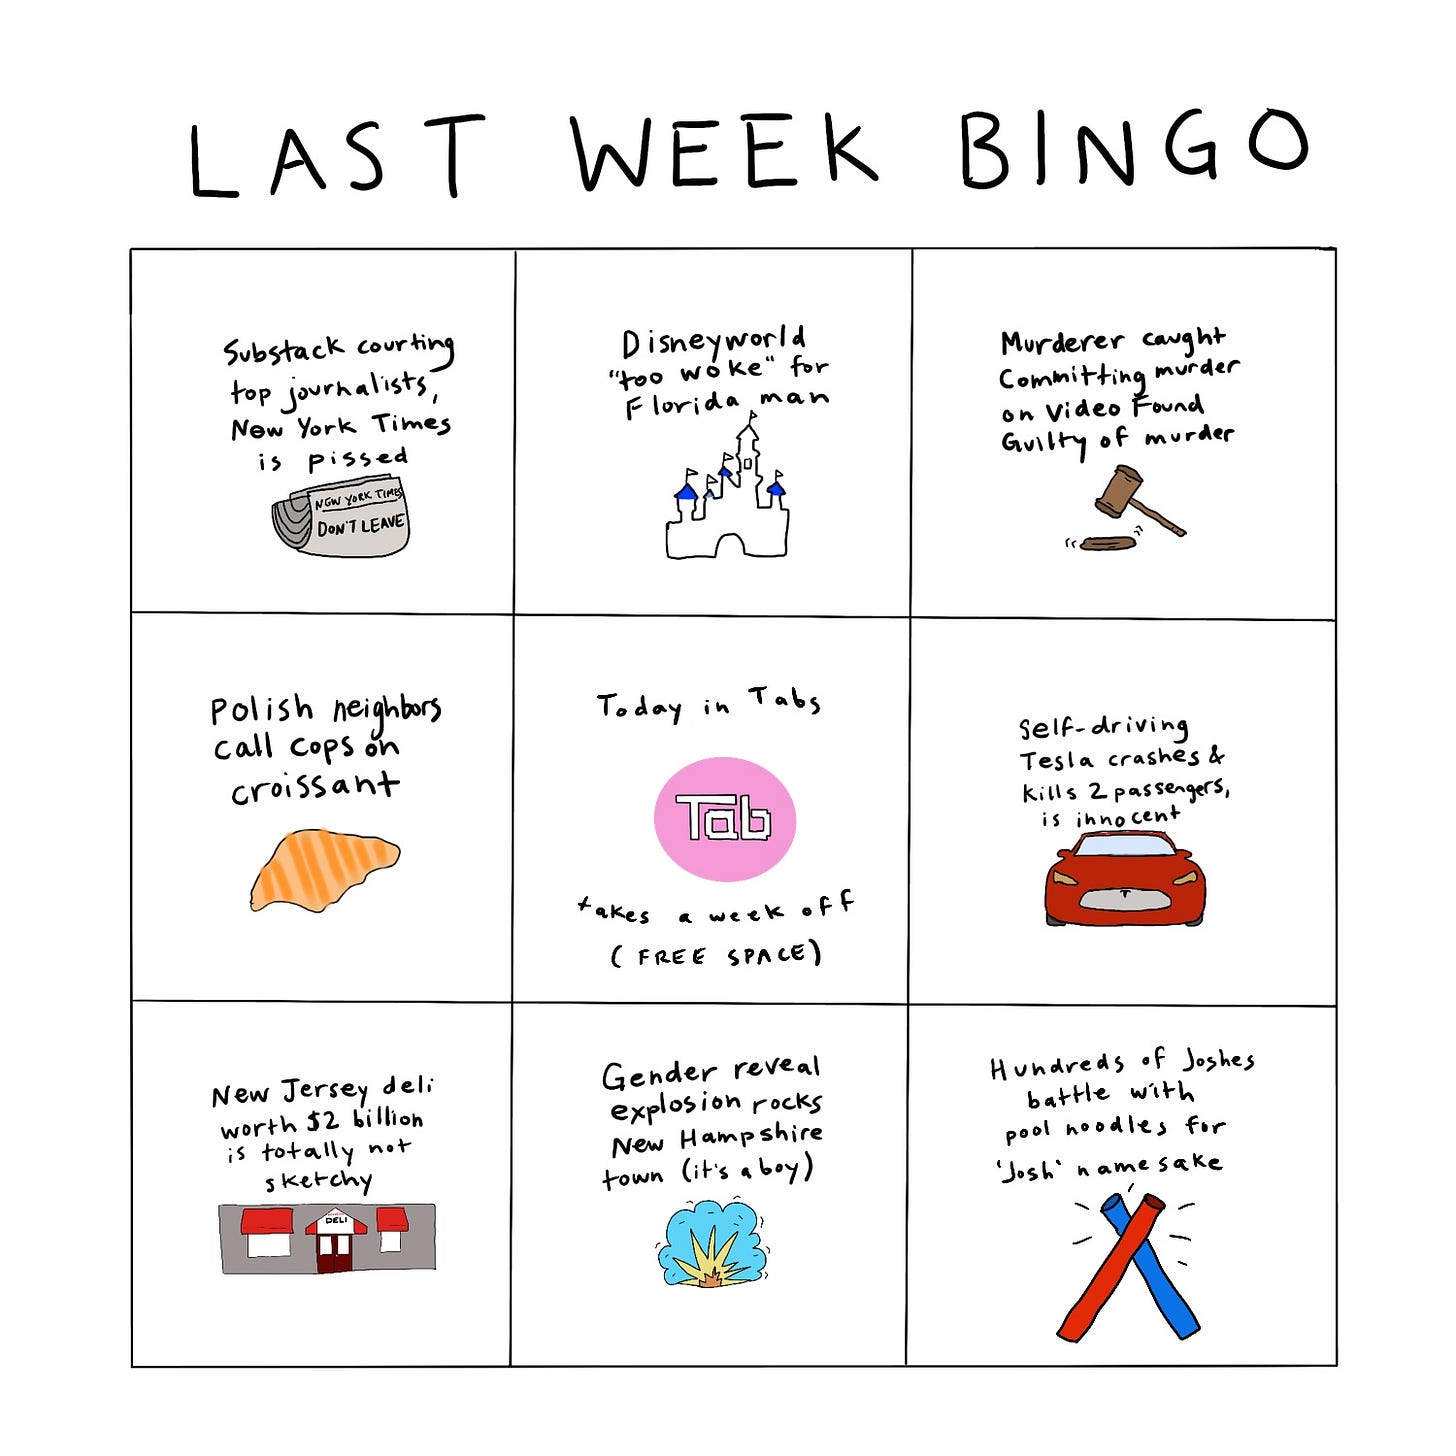 """A bingo card with 9 spaces, 3 columns and 3 rows, titled """"Last Week Bingo"""".  Row 1, from left to right–  Space #1:  """"Substack courting top journalists, New York Times is pissed."""" Accompanying doodle is a New York Times newspaper with the headline """"Don't Leave"""".  Space #2: """"Disneyworld 'too woke' for Florida man."""" Accompanying doodle is of Disneyworld's magic castle.  Space #3: """"Murderer caught committing murder on video found guilty of murder."""" Doodle of a court gavel about to slam down on a block.  Row 2, from left to right– Space #4: """"Polish neighbors call cops on croissant."""" Doodle of a glistening croissant. Space #5: """"Today in Tabs takes a week off (free space)."""" Doodle of Tabs logo in a pink circle. Space #6: """"Self-driving Tesla crashes & kills 2 passengers, is innocent."""" Doodle of a non-threatening Tesla car in burgundy. Row 3, from left to right– Space #7: """"New Jersey deli worth $2 billion is totally not sketchy."""" Doodle of a gray building with 'Deli' signage above the entrance. Space #8: """"Space Gender reveal explosion rocks New Hampshire town (it's a boy)."""" Doodle of an explosion with a cloud of blue smoke.  Space #9: """"Hundreds of Joshes battle with pool noodles for 'Josh' namesake."""" Doodle of A red and blue pool noodle clashing against each other."""